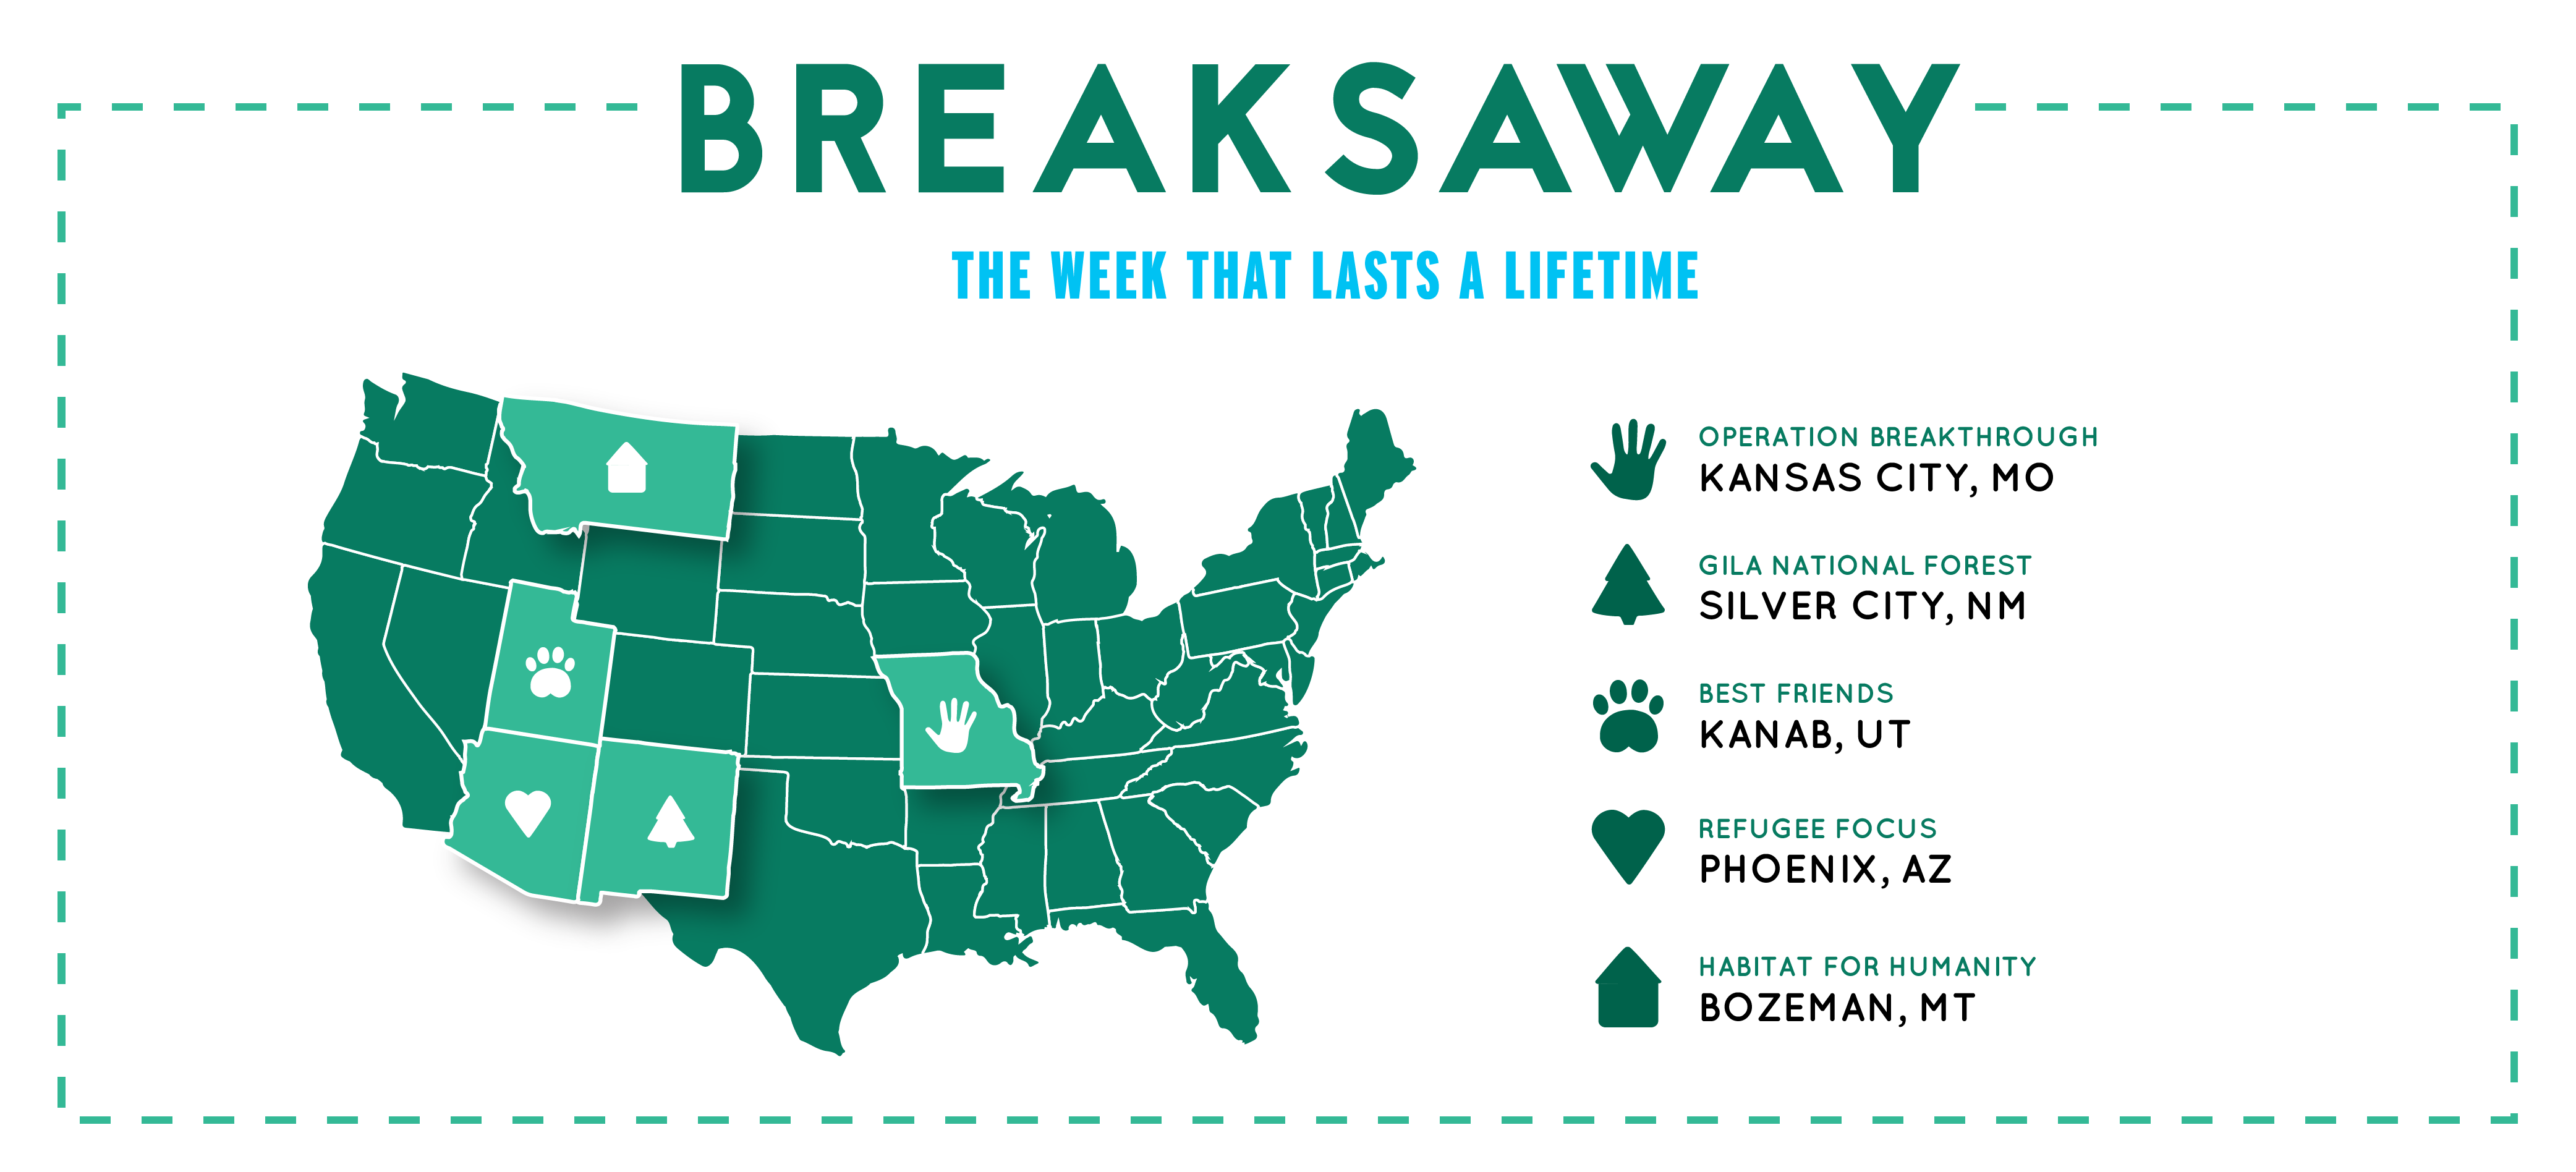 breakaway the week that lasts a lifetime. operation breakthrough Kansas City, mo. gila national forest, nm. best friends, Kanab, ut. refugee focus, Arizona. habitat for humanity Bozeman, mt. registration is open now!